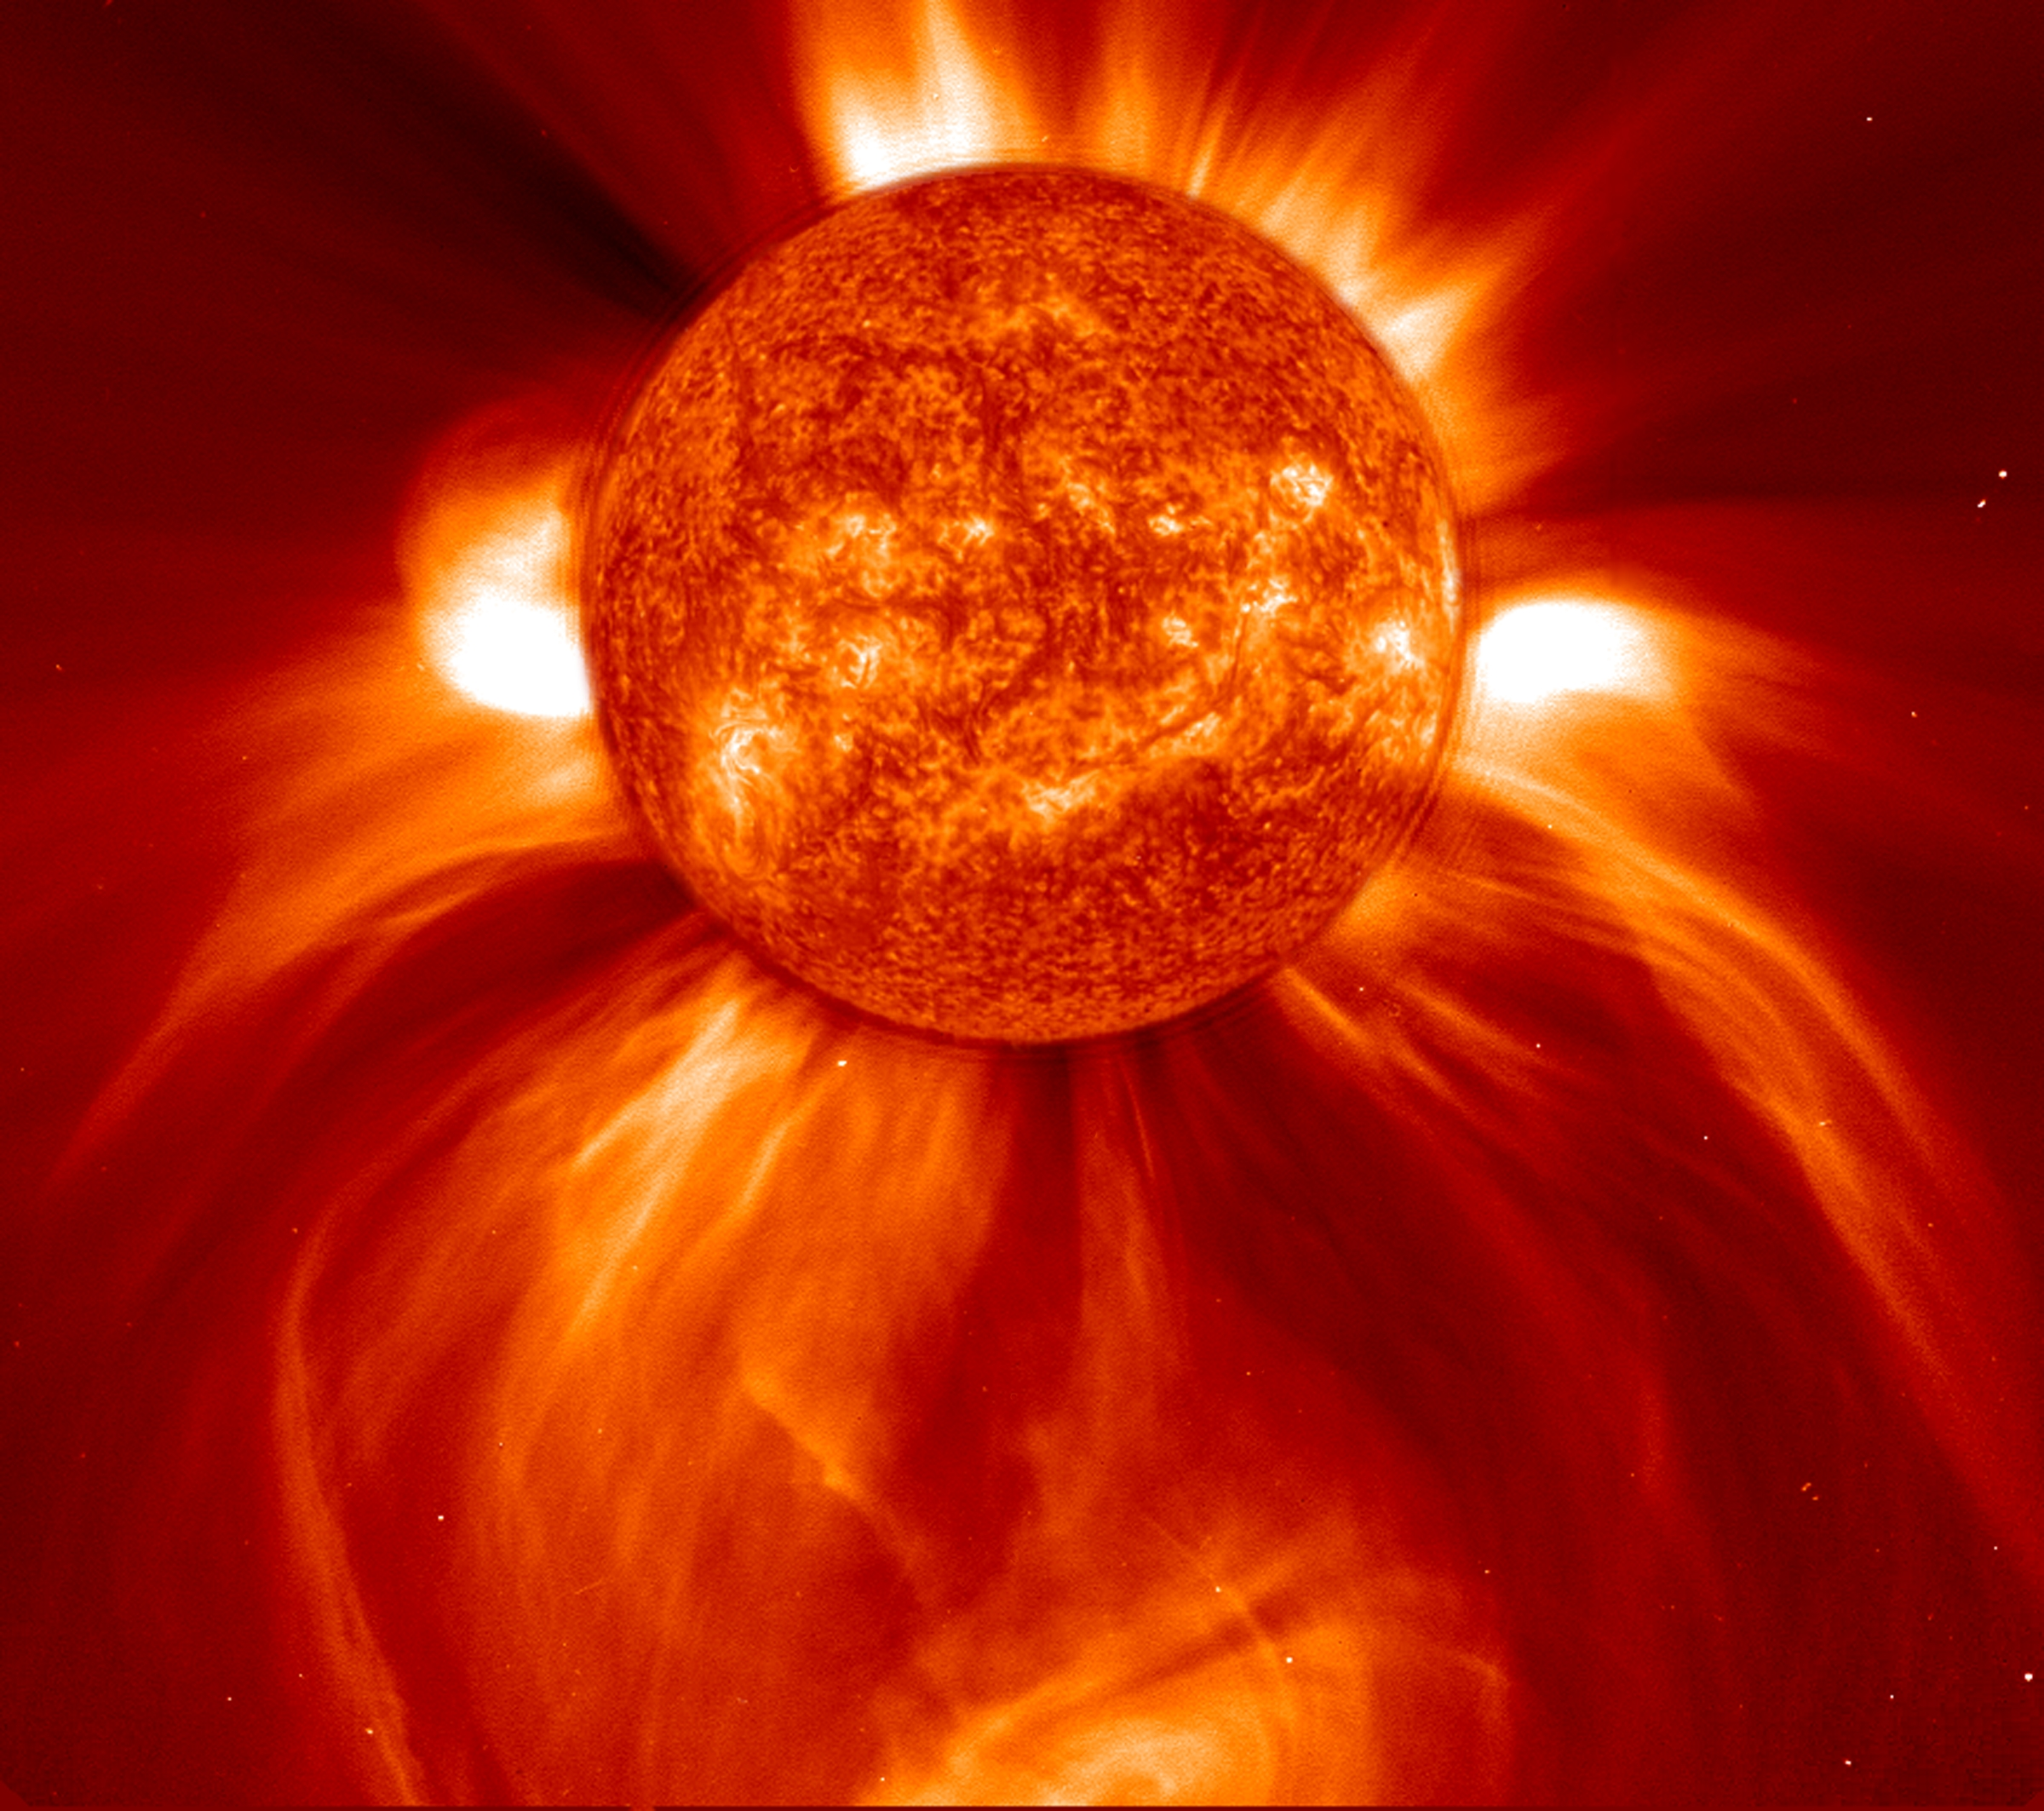 SOHO - éruption solaire - Coronal Mass Ejection - CME - ESA - NASA - observatoire solaire - Winner of SOHO's Birthday Image Contest